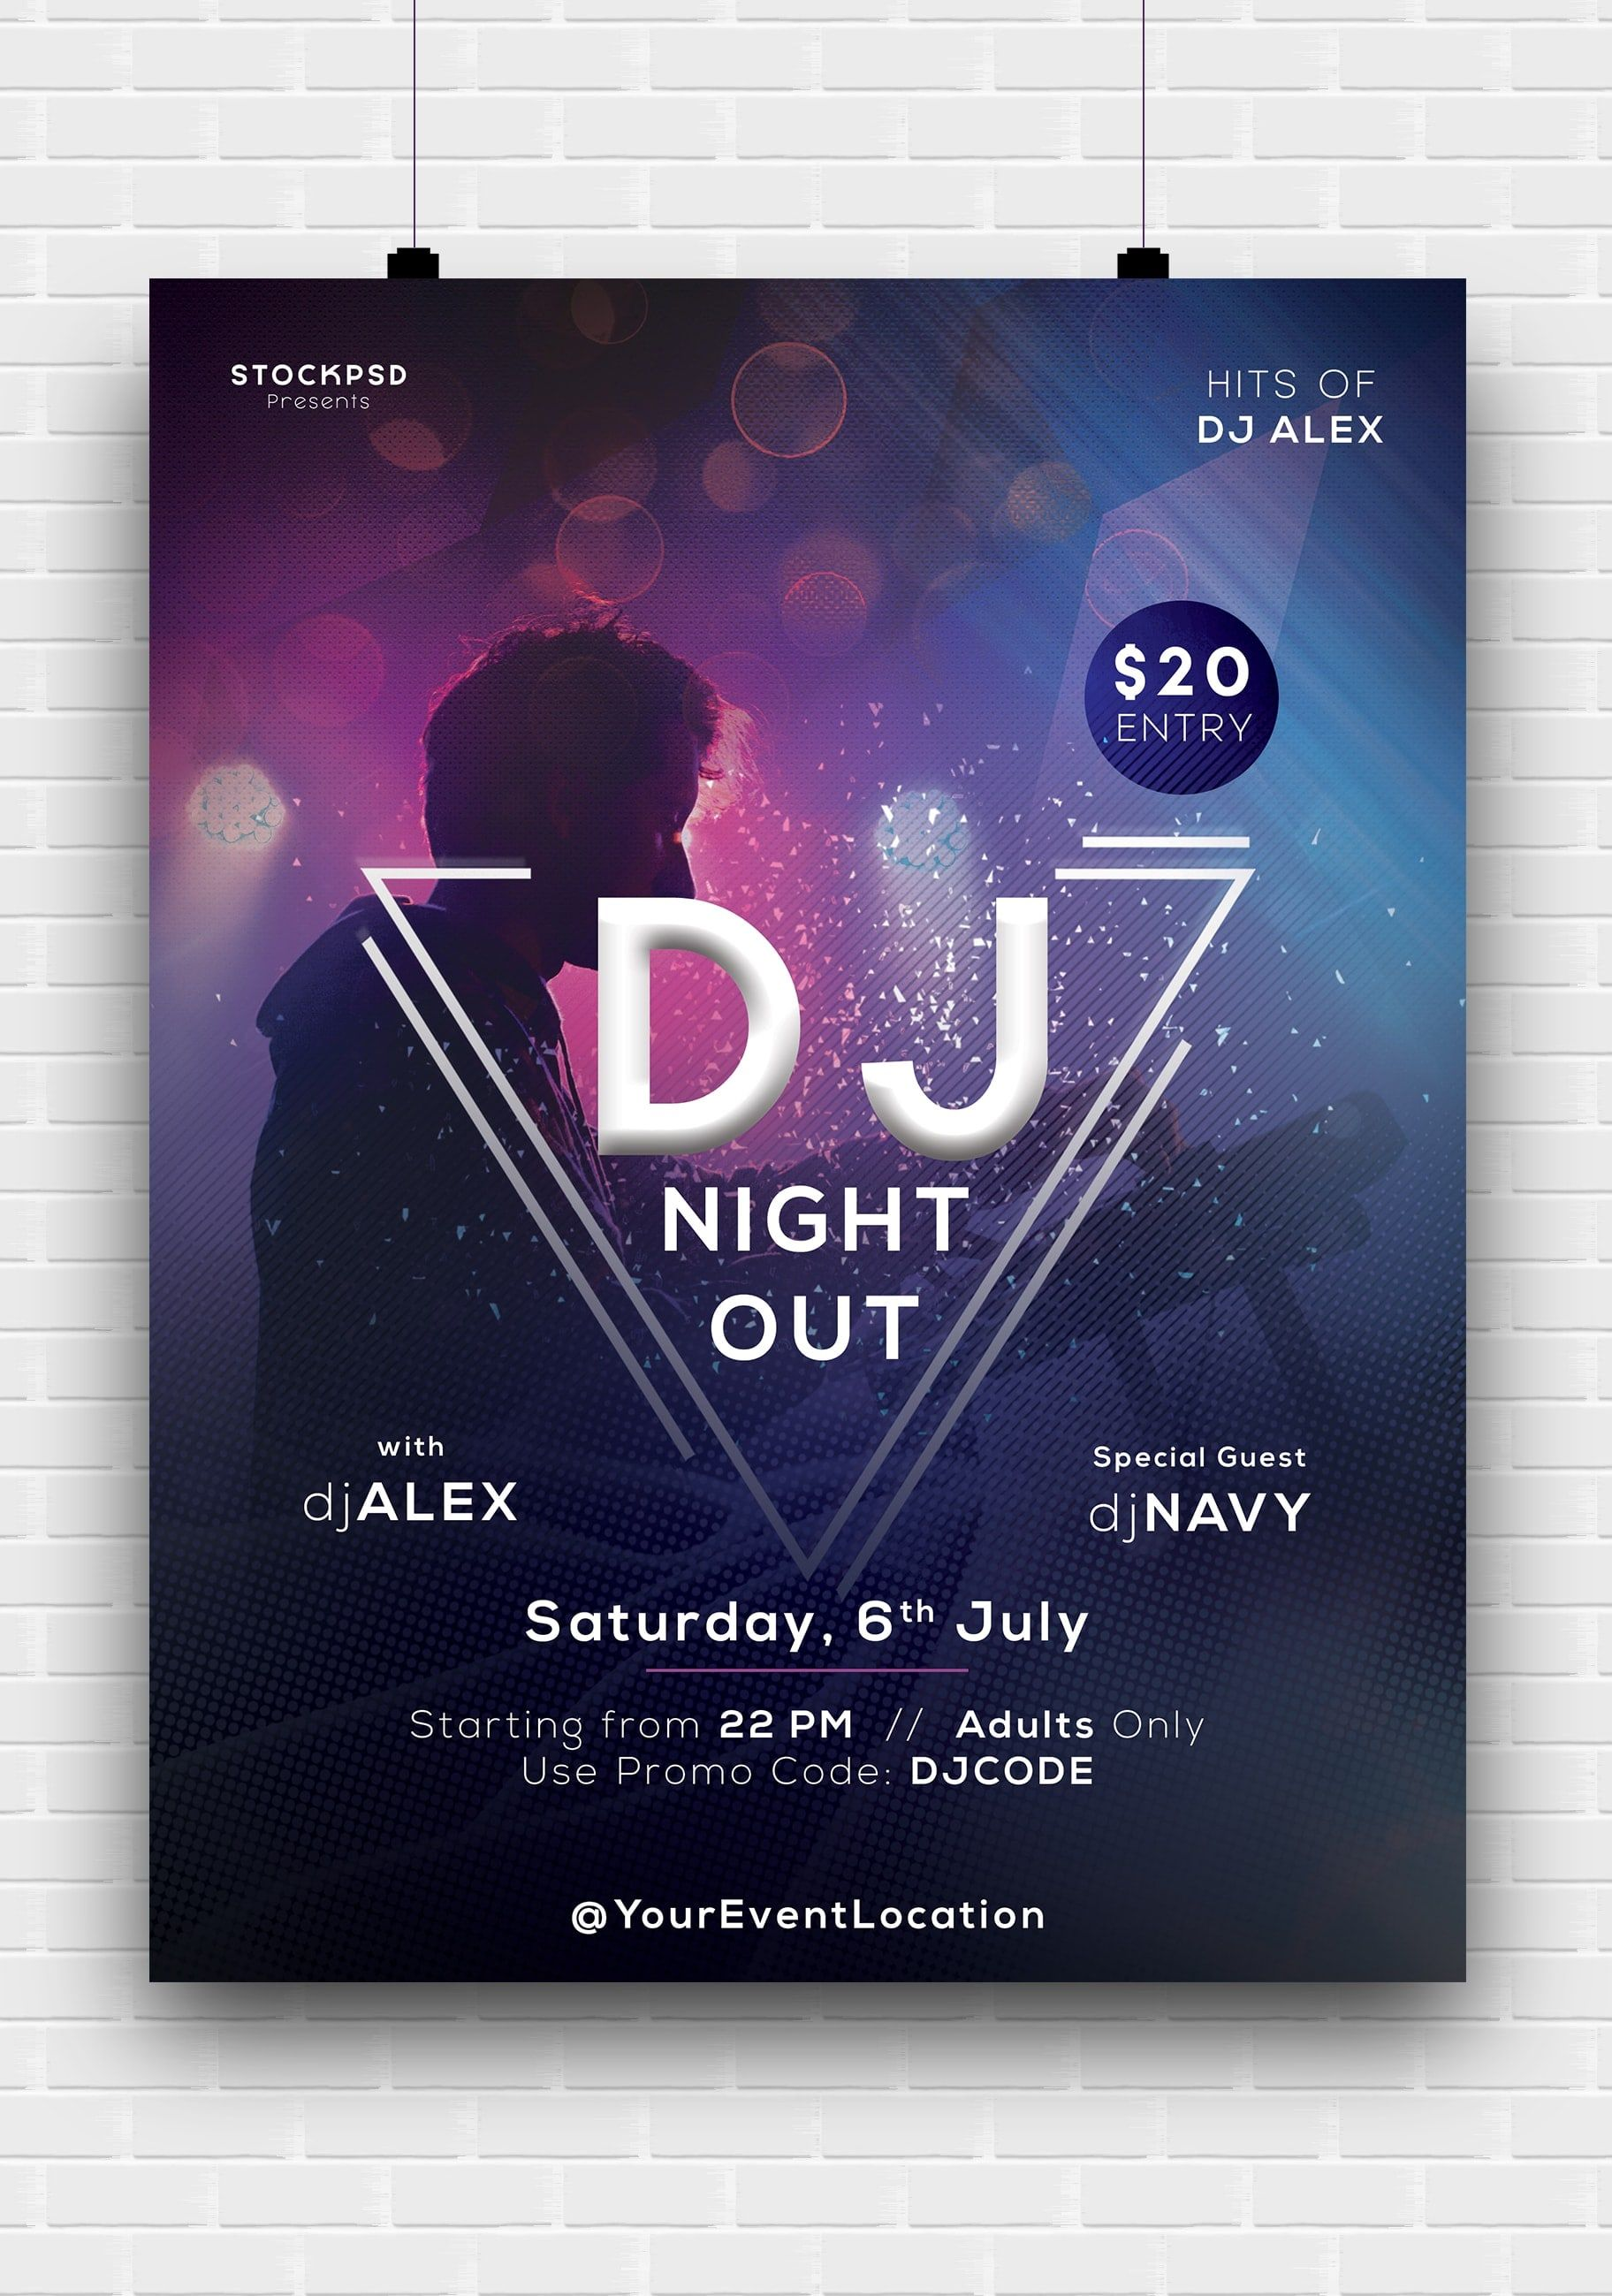 Dj Night Out Free Psd Poster Template Psd Poster Template Free Psd Poster Poster Template